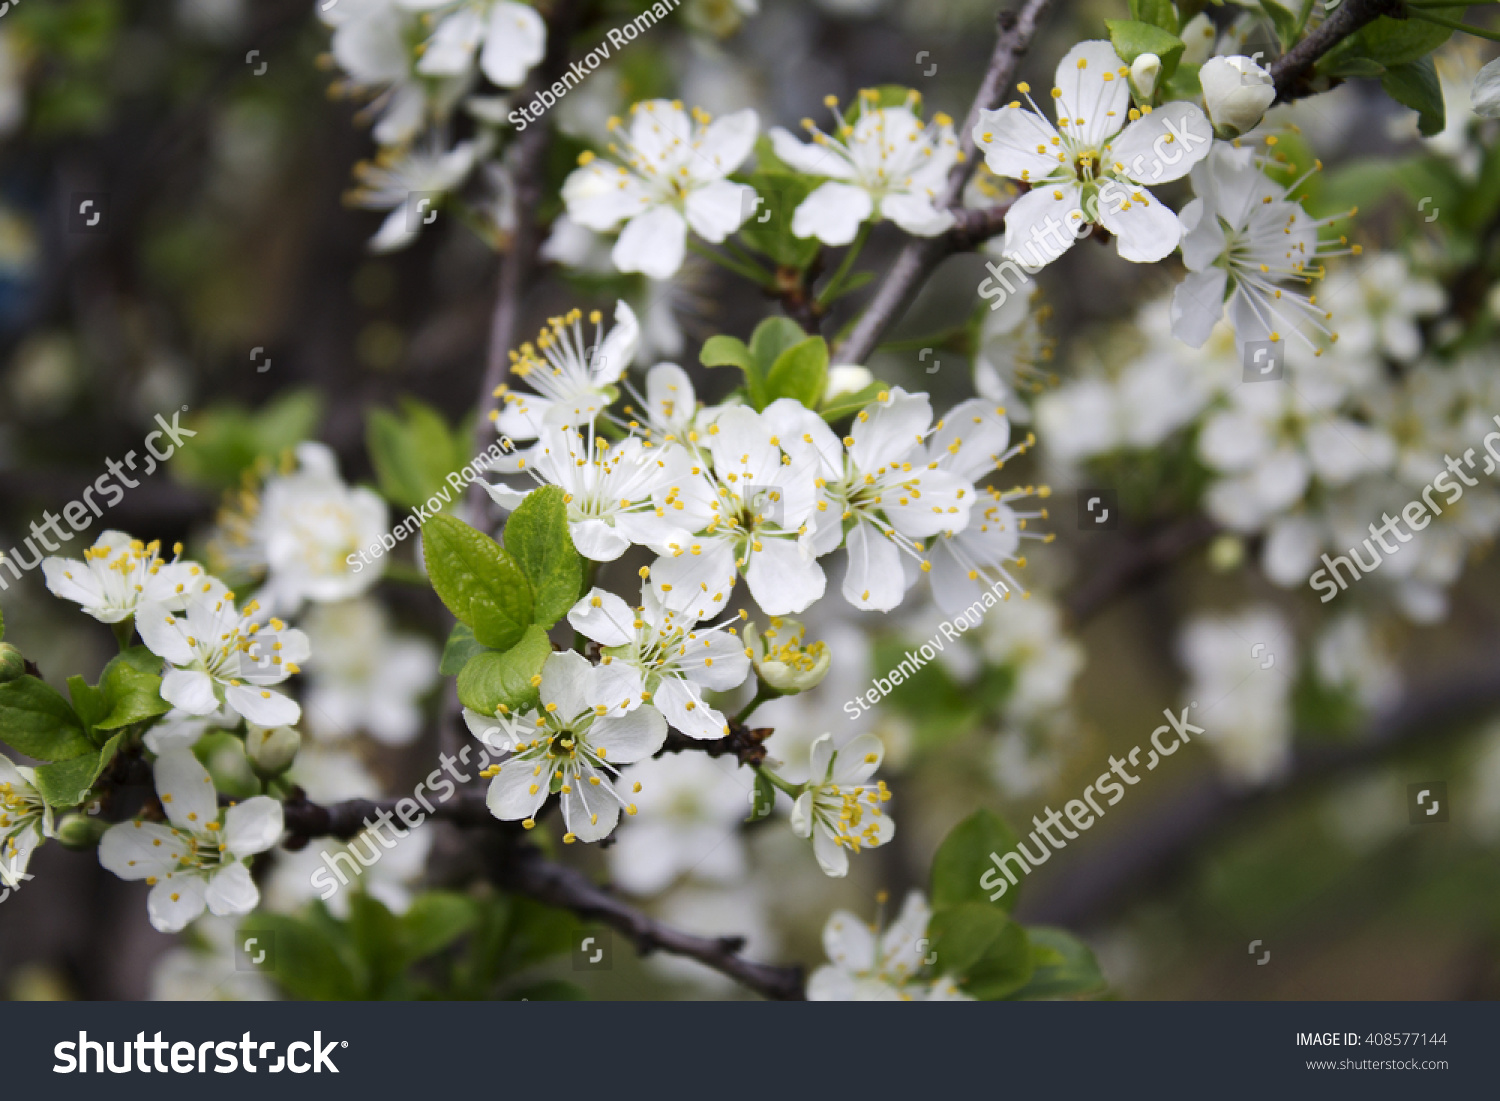 Blossom Of Fruit Trees White Flowers Pear Tree Ez Canvas